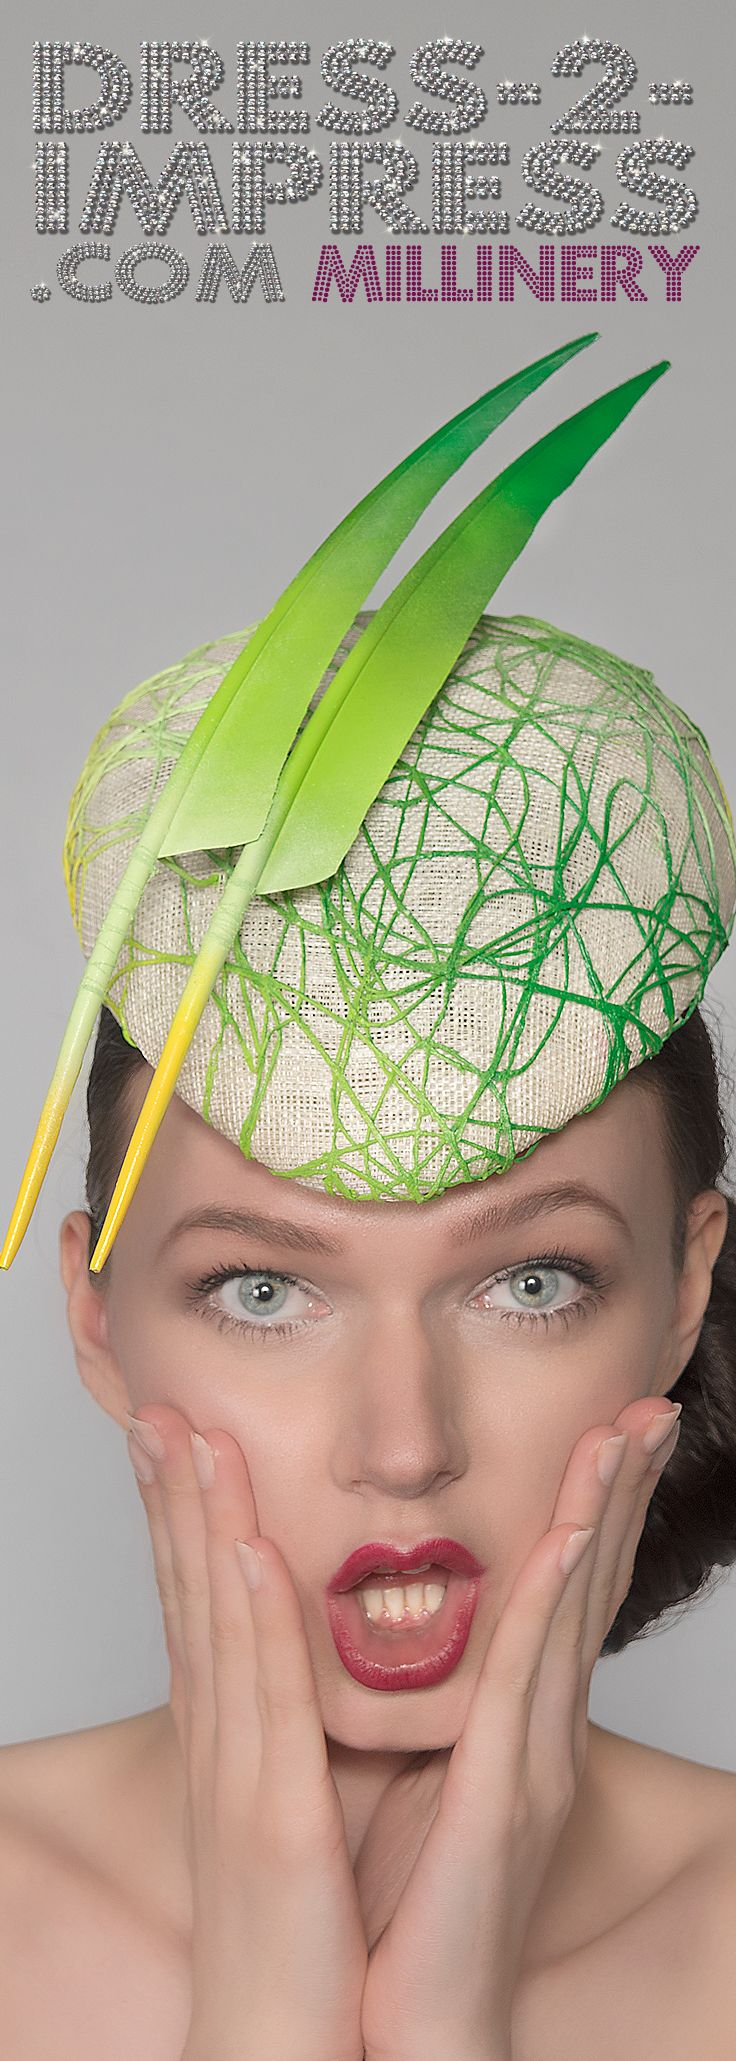 Great Fun Hatinator, Fascinator Hat for the Races. Spring Racing Fashion. Fashion on the Field. Hat for Royal Ascot or other Races, Friends Weddings, Salon Prive or other Formal events. Can be custom made in any colours. Handmade in the UK. #ethicalfashion #shopsmall #etsy #etsyseller #cybermonday #handmade #madeintheuk #fashionista #fashionaddict #millinery #tocado